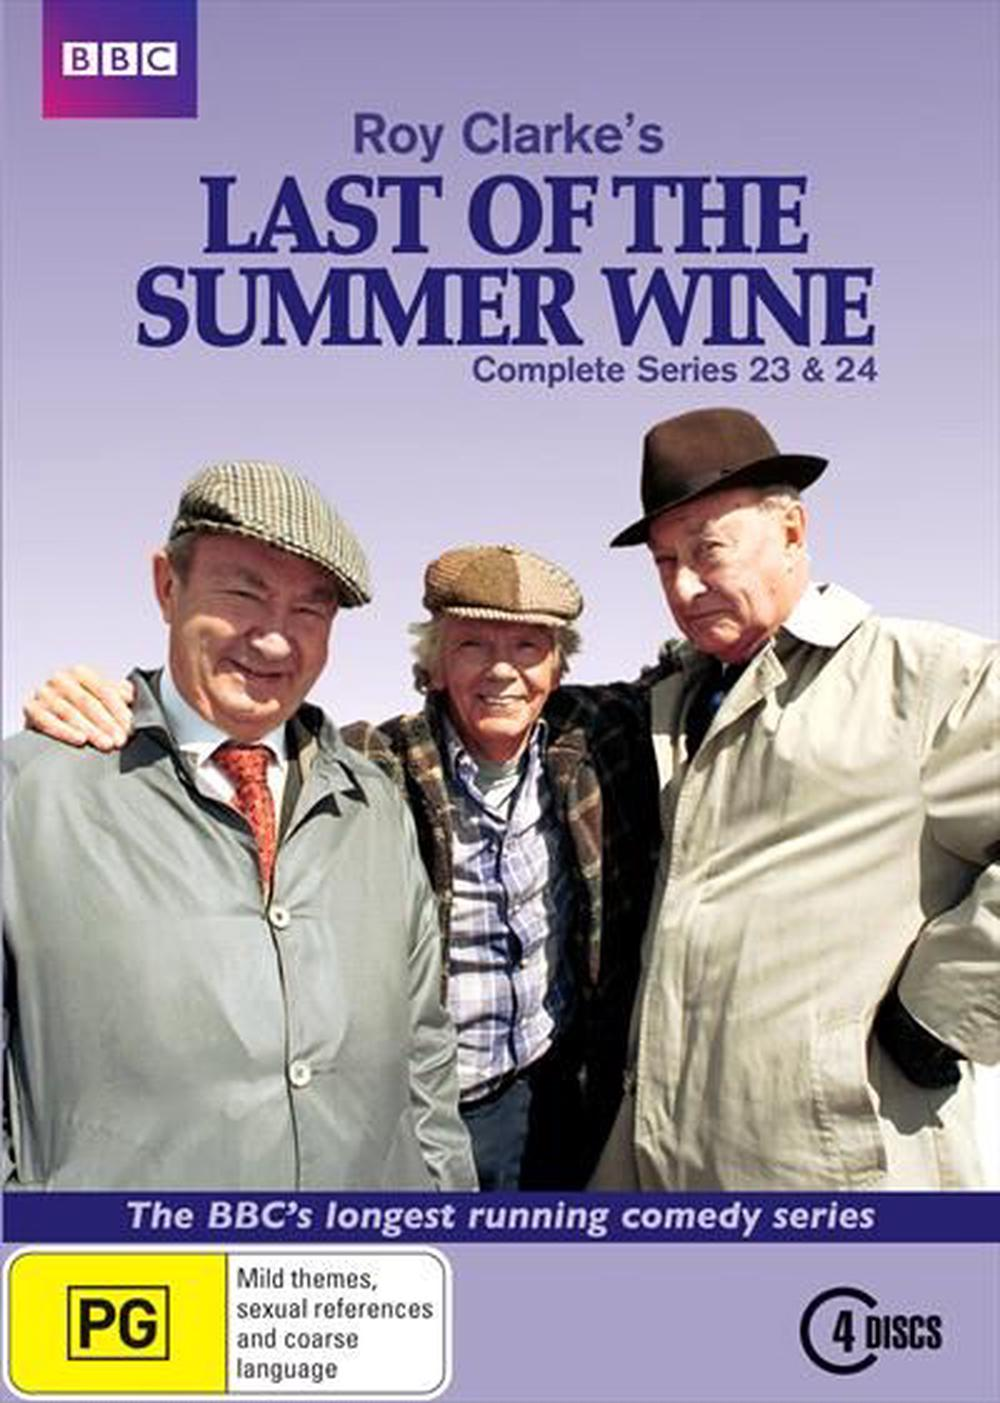 24 Movie Online Last Of The Summer Wine Series 23 24 Dvd Buy Online At The Nile